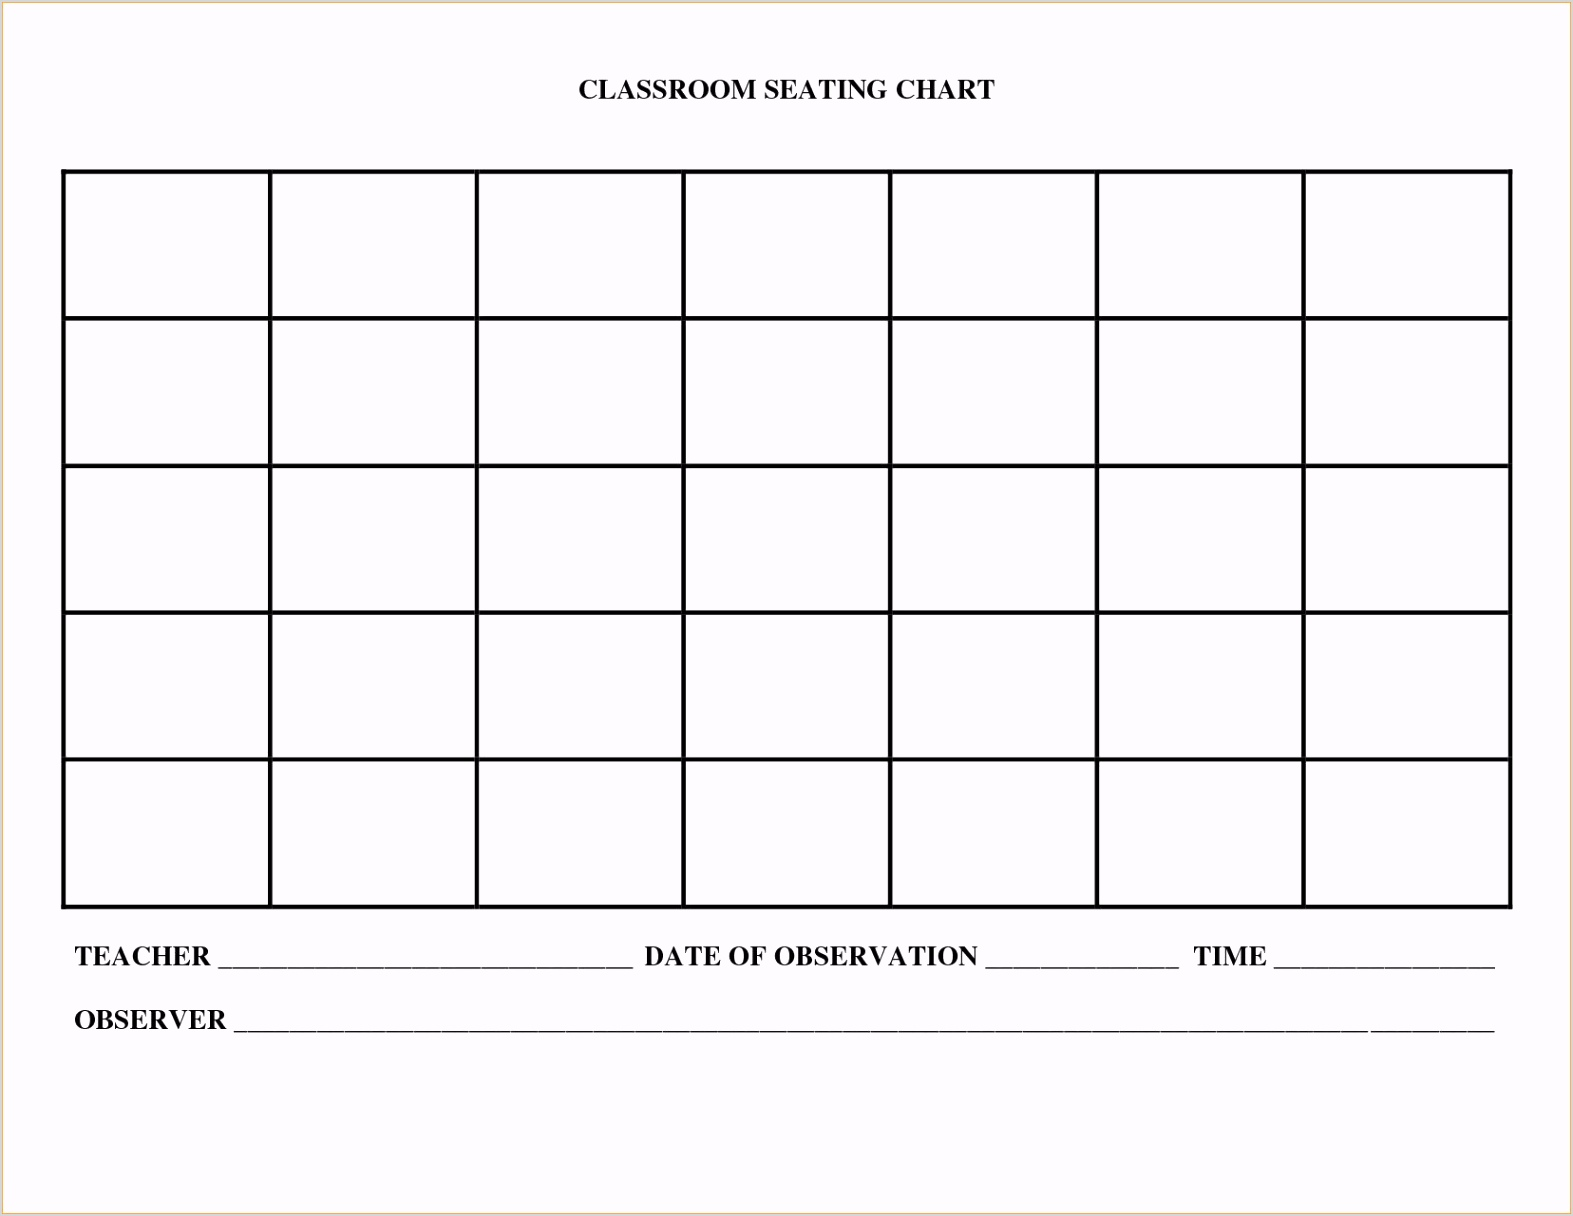 Church Seating Chart Template 21557 Efo4m 28 Church Seating Chart Template In 2020 with Images T4w@[o H G T E N B E B T D A S D F G H J K L O I U Y T R M N W C G T Y U X Z C C X Z A S Q W D D A J H H U I K J T U F I E F D W H I O C P L O K I U J M N H Y T R F V C D E W S X Z A Q S Z X C V B N M N B V C C X Z A Q W E E D C V T